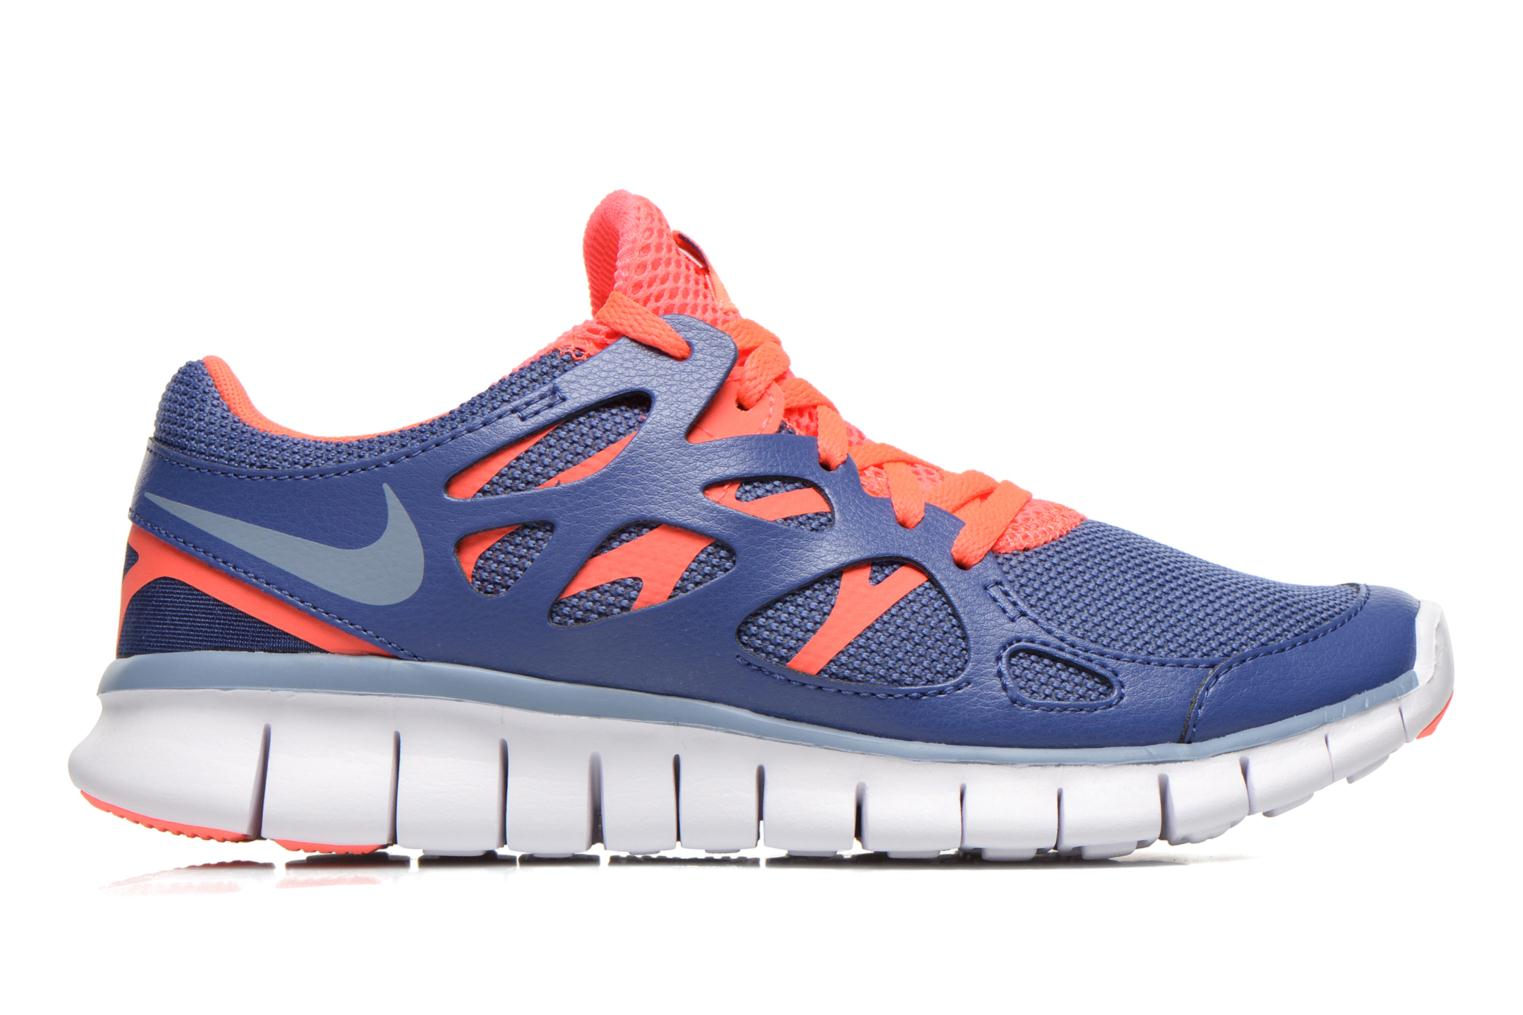 Wmns Nike Free Run+ 2 Ext Blue Legend/Cl Bl-Ht Lv-White